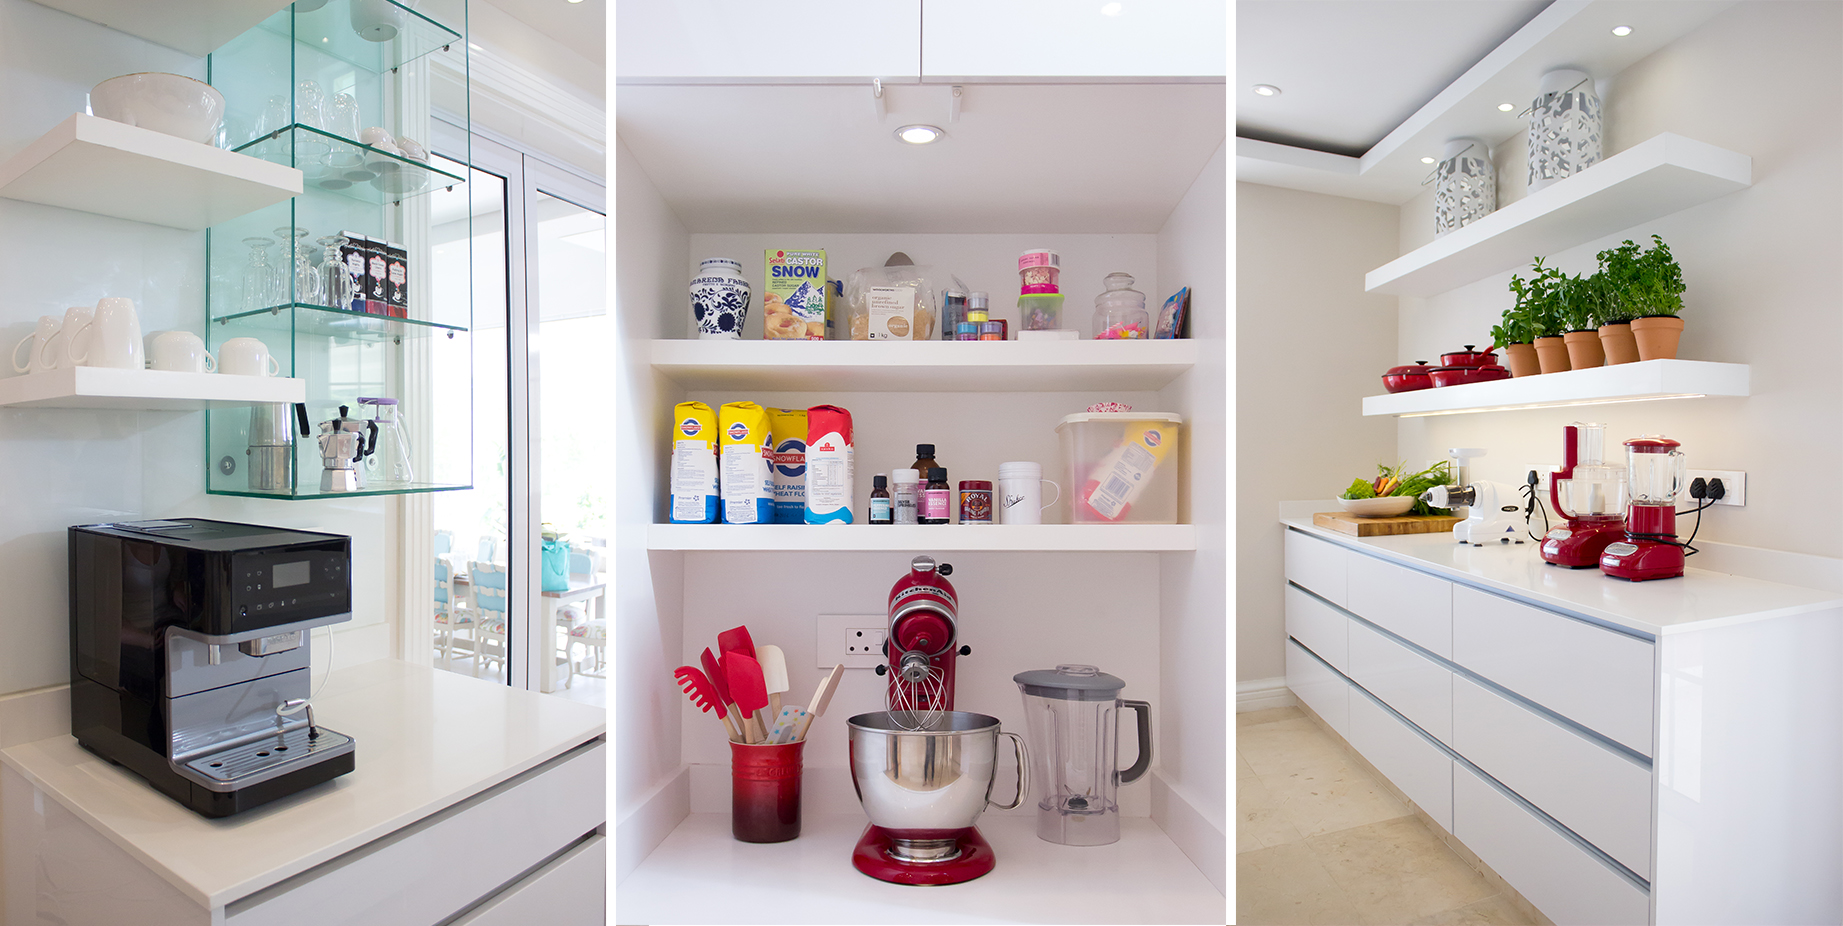 The coffee zone, baking zone and small appliance zone are featured here, along with gorgeous KitchenAid appliances.